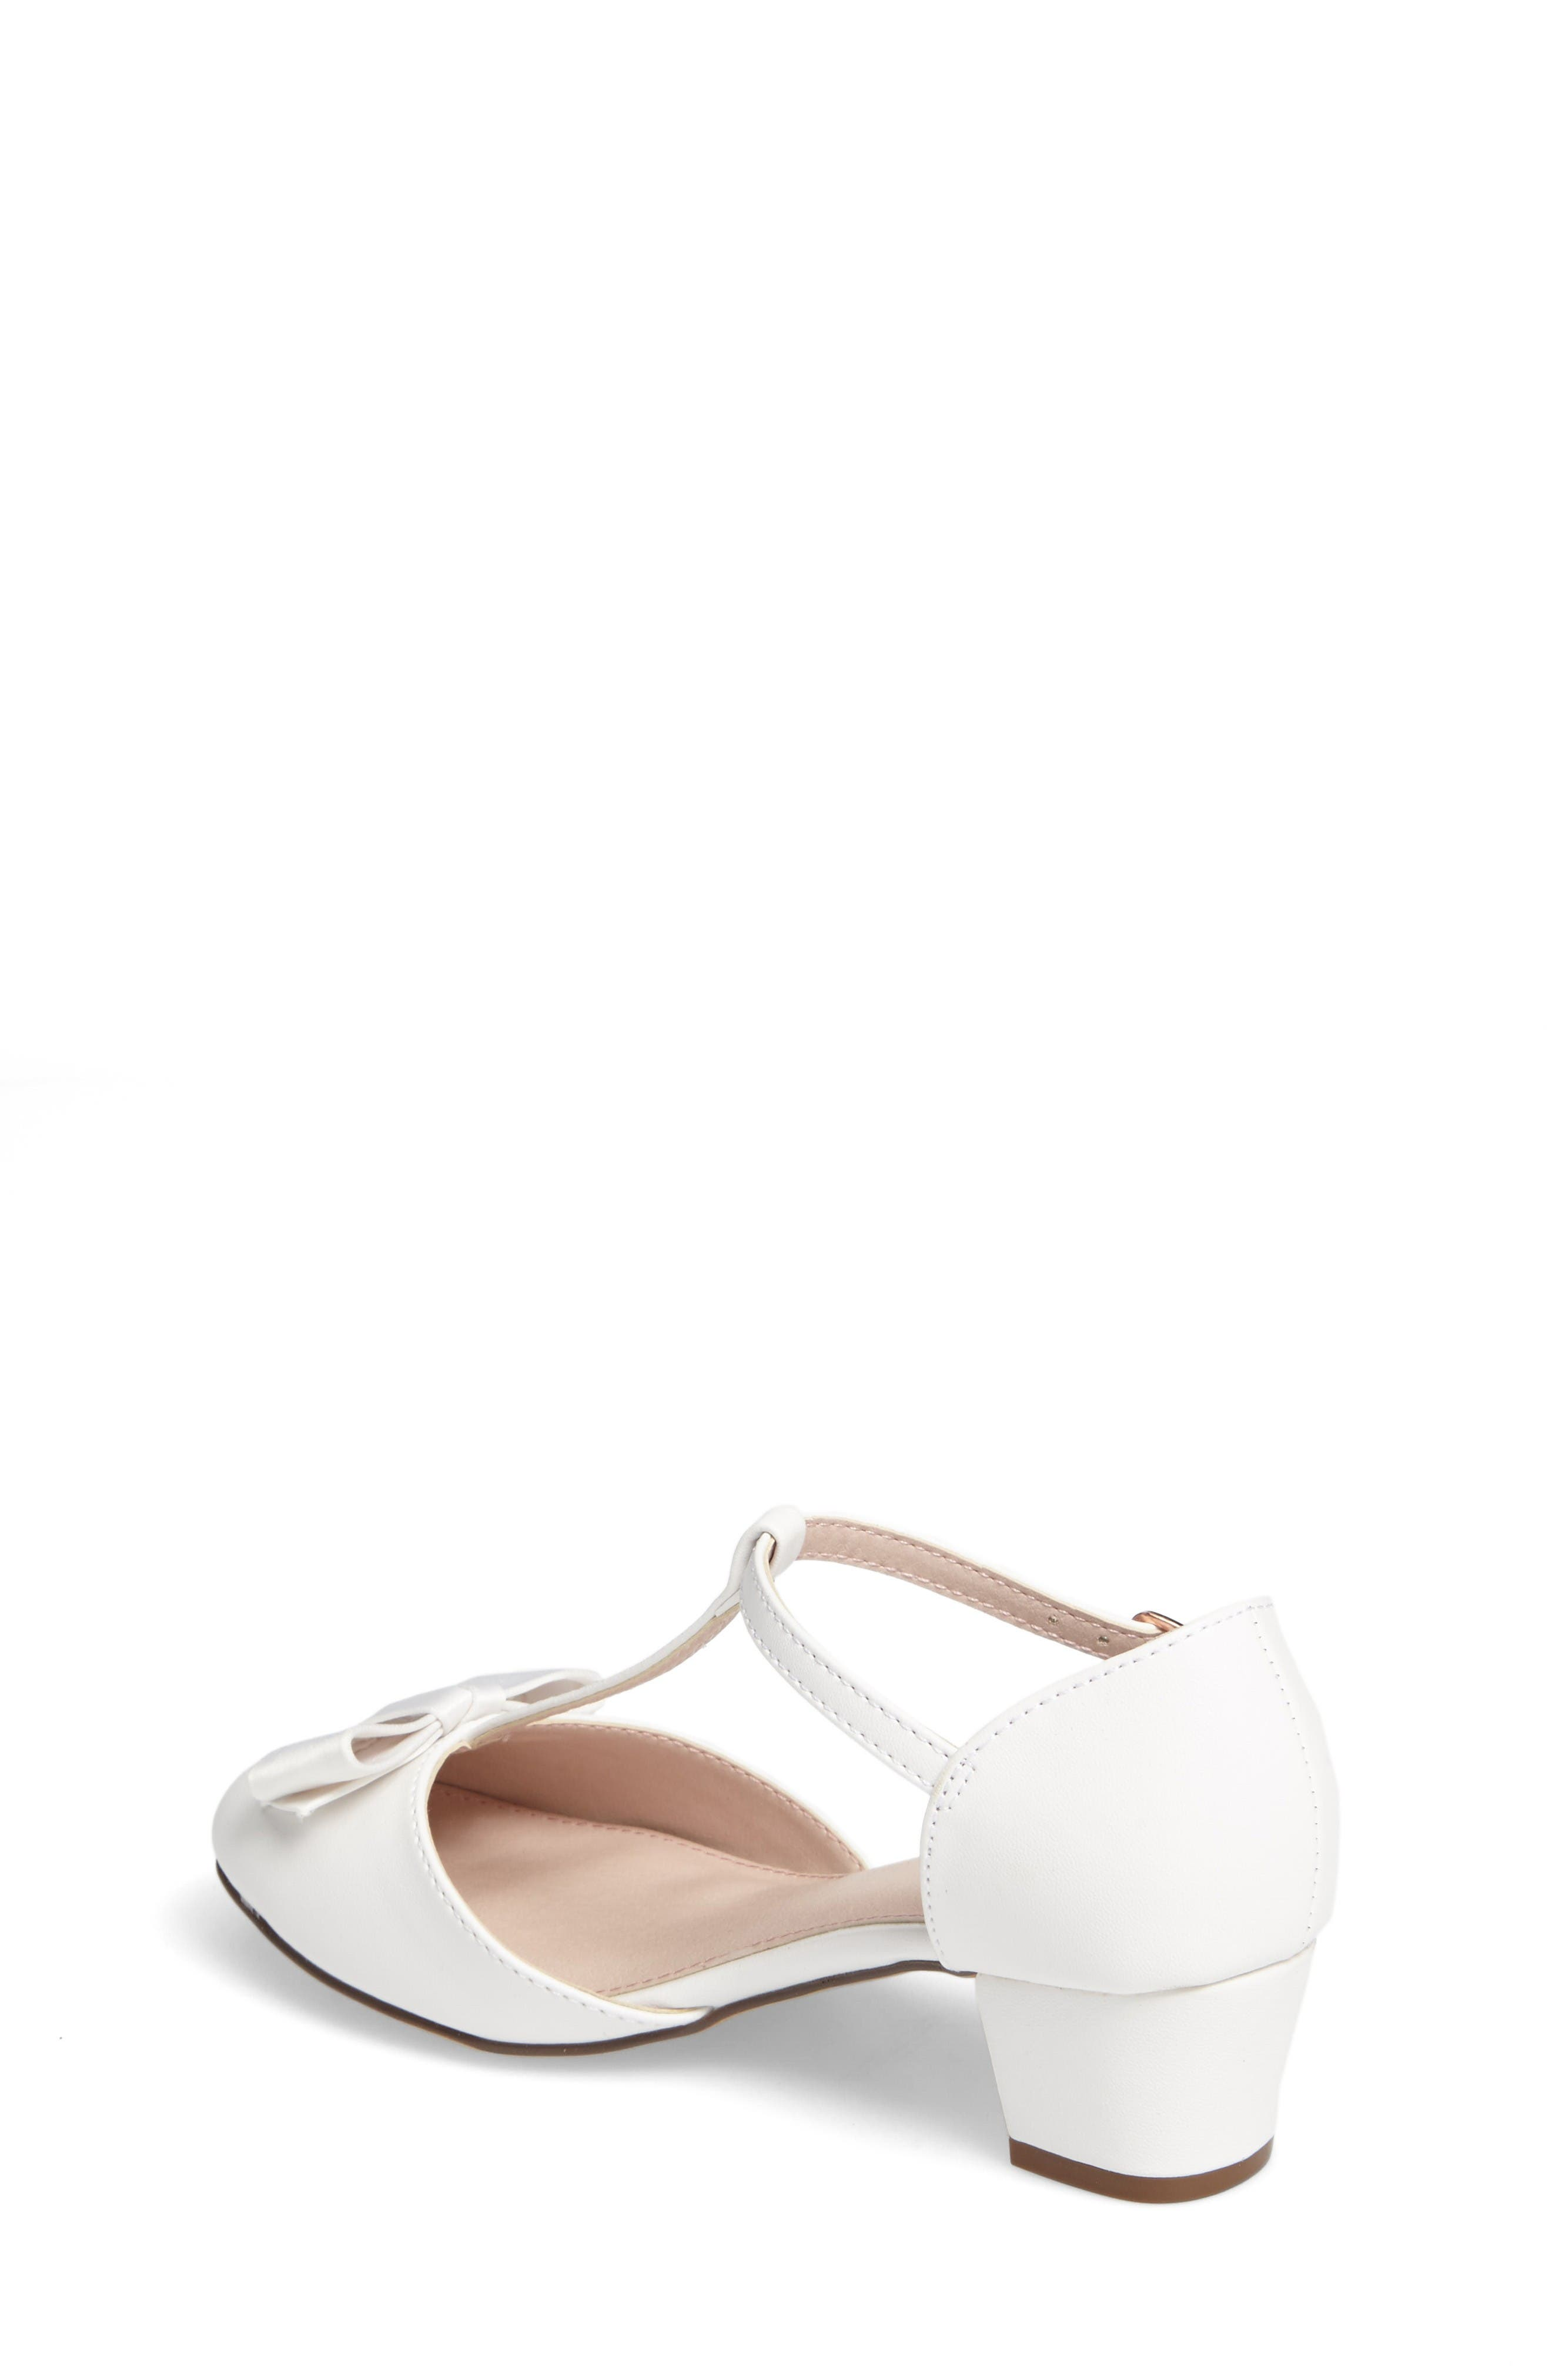 Wylow T-Strap Bow Pump,                             Alternate thumbnail 2, color,                             White Faux Leather